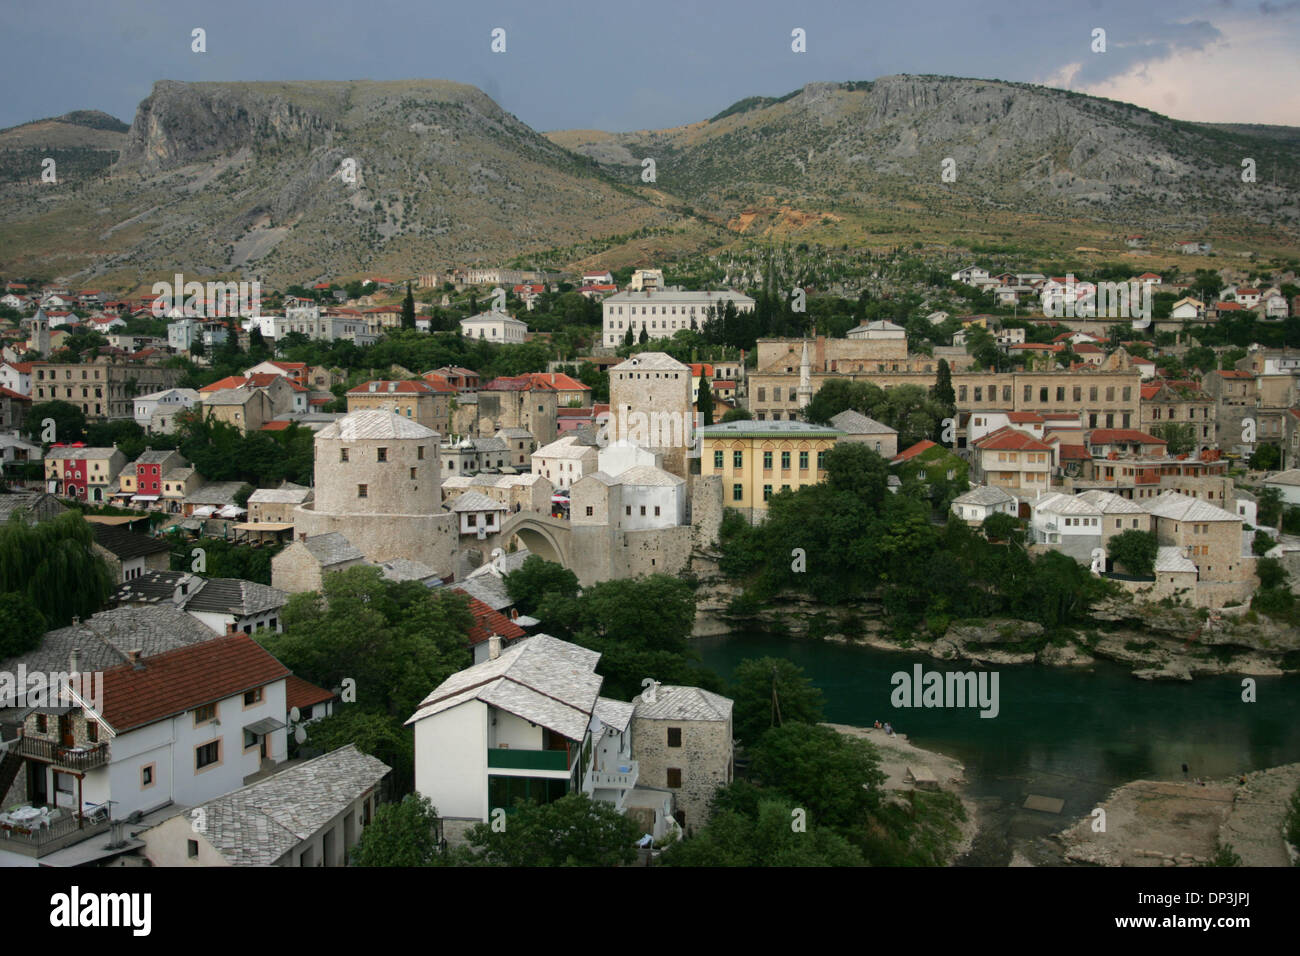 Jul 11, 2006; Mostar, BOSNIA AND HERZEGOVINA; The unofficial capital of Herzegovina, Mostar is situated on the Neretva river and is the fifth-largest city in the country. Mostar was named after its Old Bridge (Stari most) and the towers on its sides, 'the bridge keepers.' Founded in the late 15th century, Mostar was the chief administrative city for the Ottoman Empire in the Herzeg - Stock Image